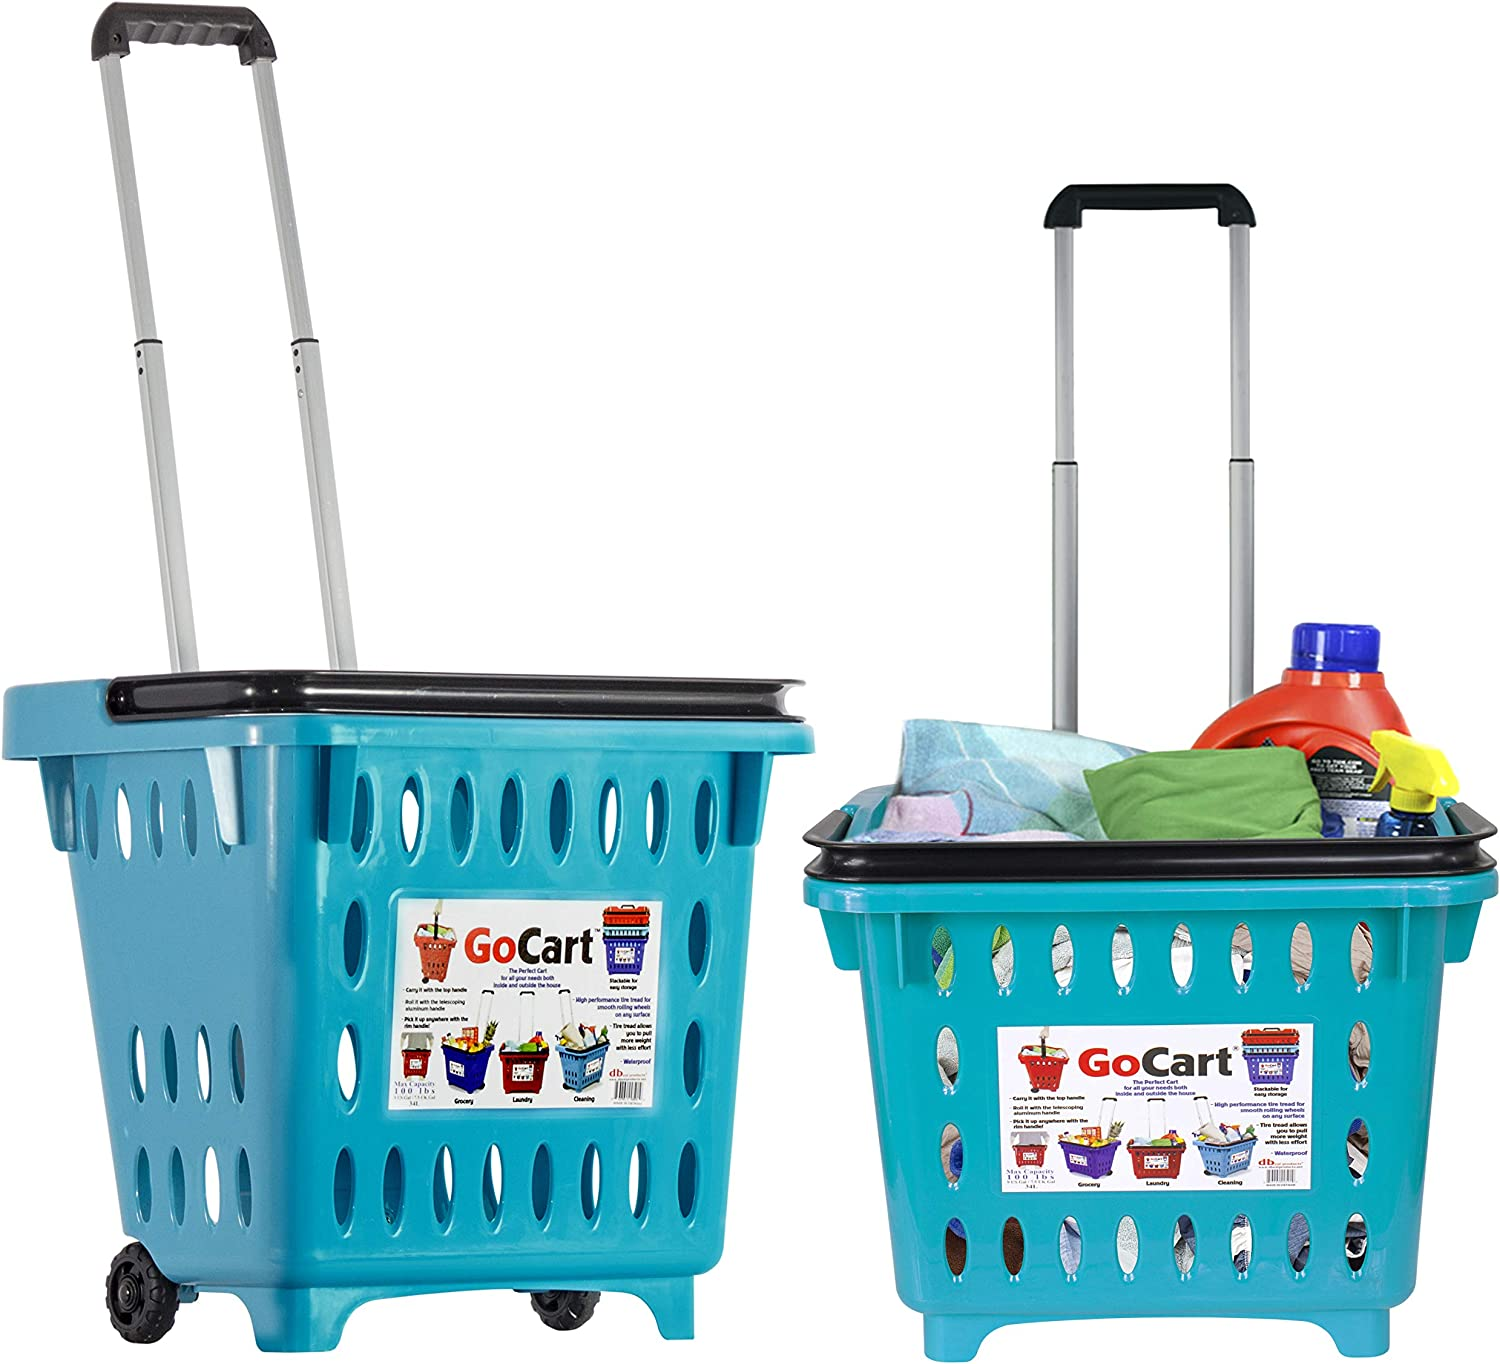 dbest products Bigger Gocart 5 Pack Grocery Cart Rolling Shopping Laundry Basket on Wheels Hamper with Telescopic Handle Cleaning Caddy Trolley 5 Count Teal